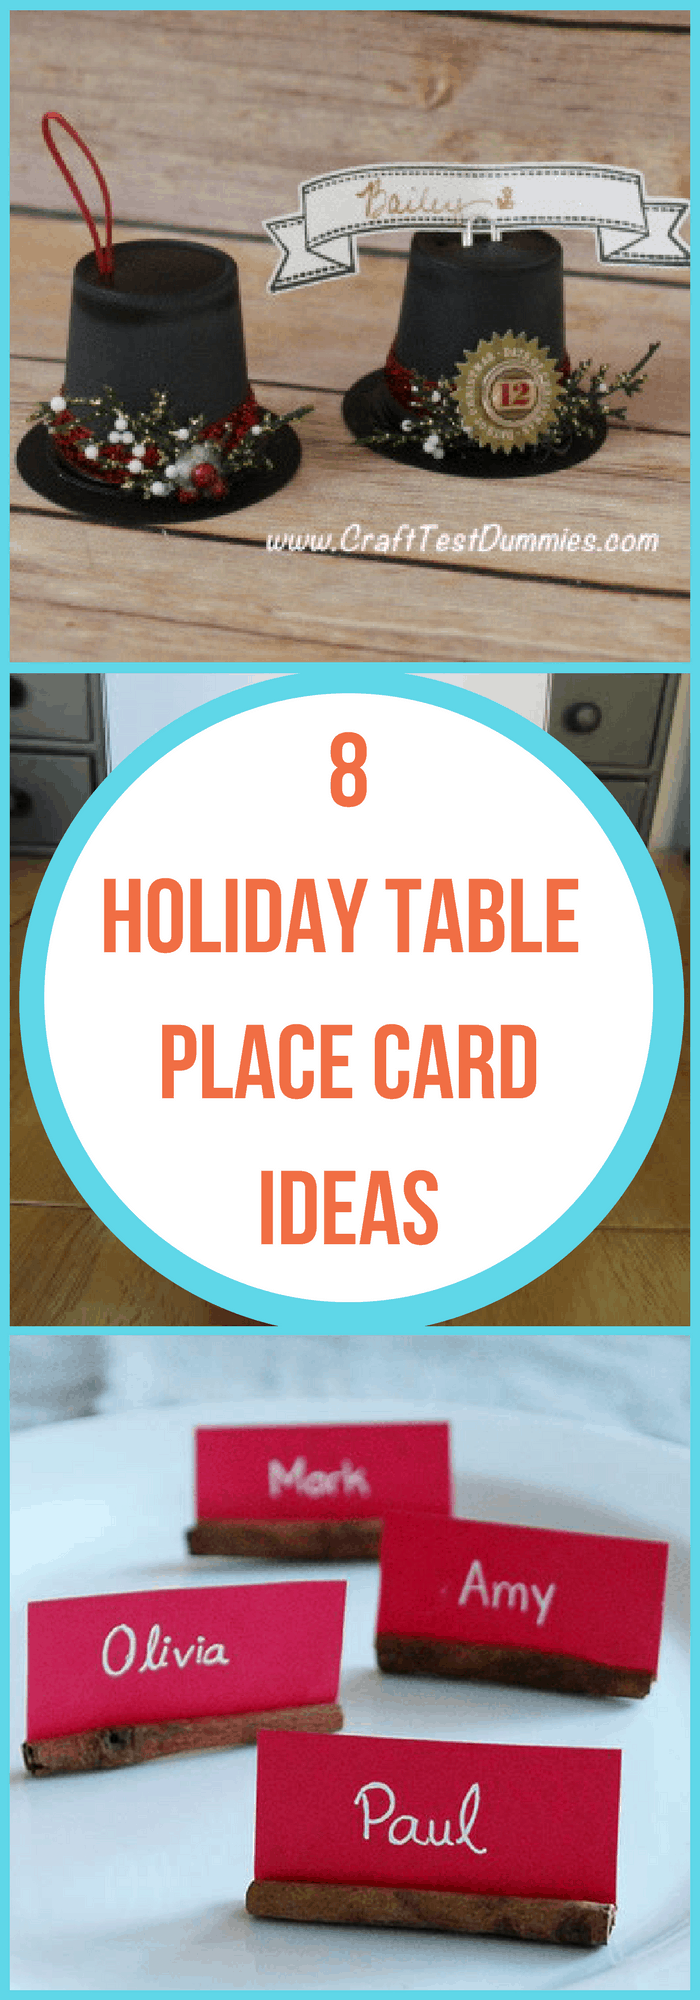 Holidays--8 Holiday table place cards ideas--The Organized Mom